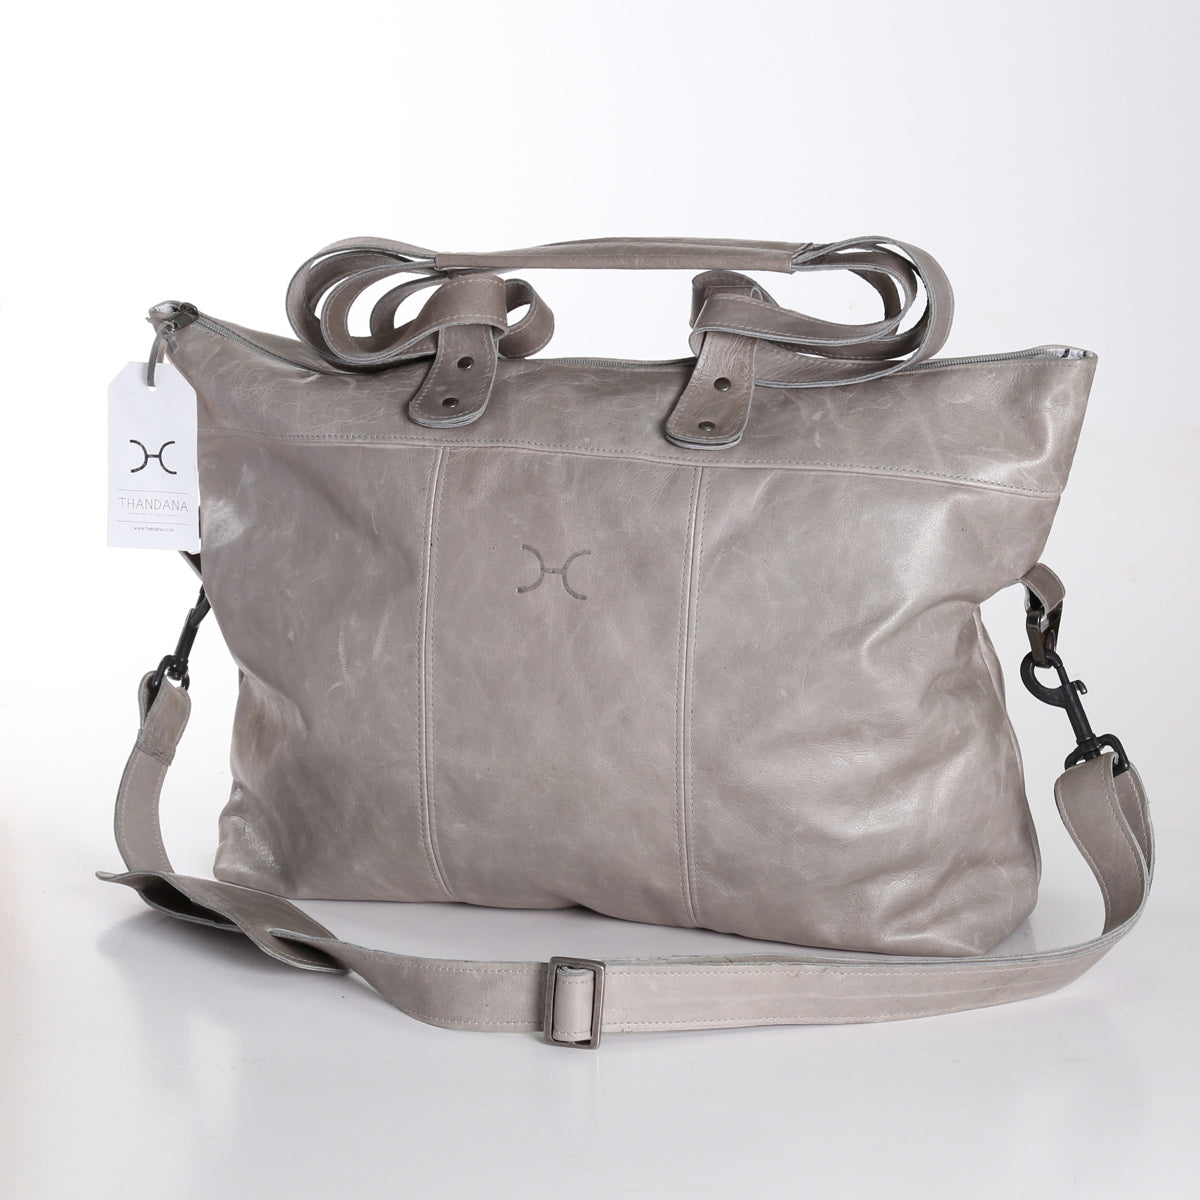 Thandana Ladies Cabin Bag - Grey - Zufrique Boutique